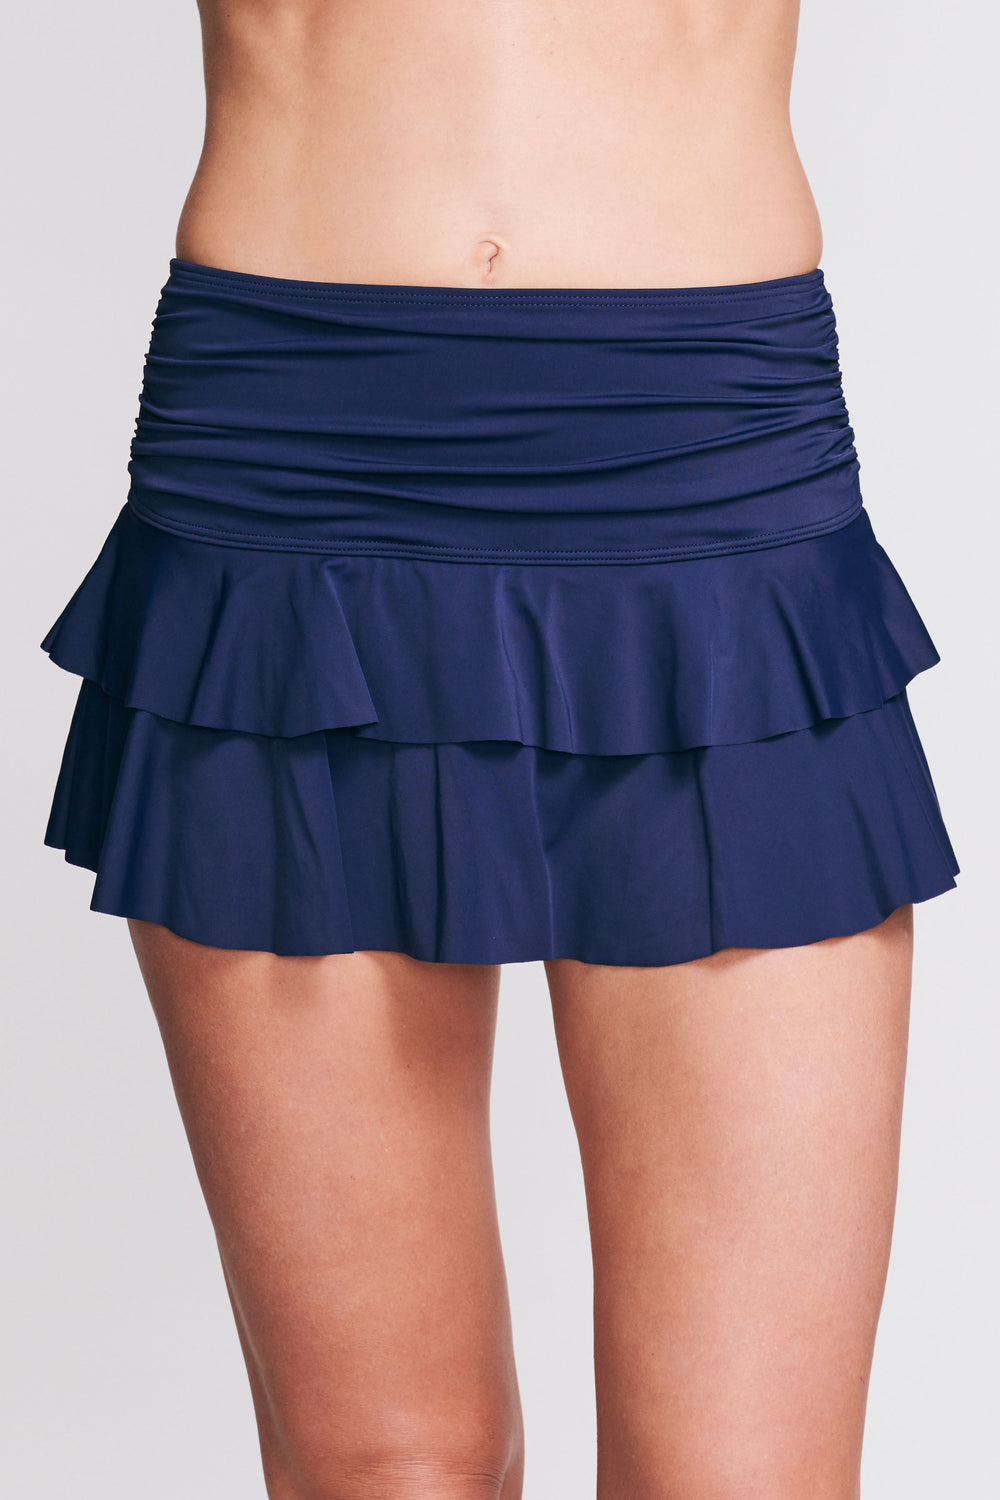 DOUBLE RUFFLE RUCHED SWIM SKIRT IN SOLID NAVY BY MAZU SWIM